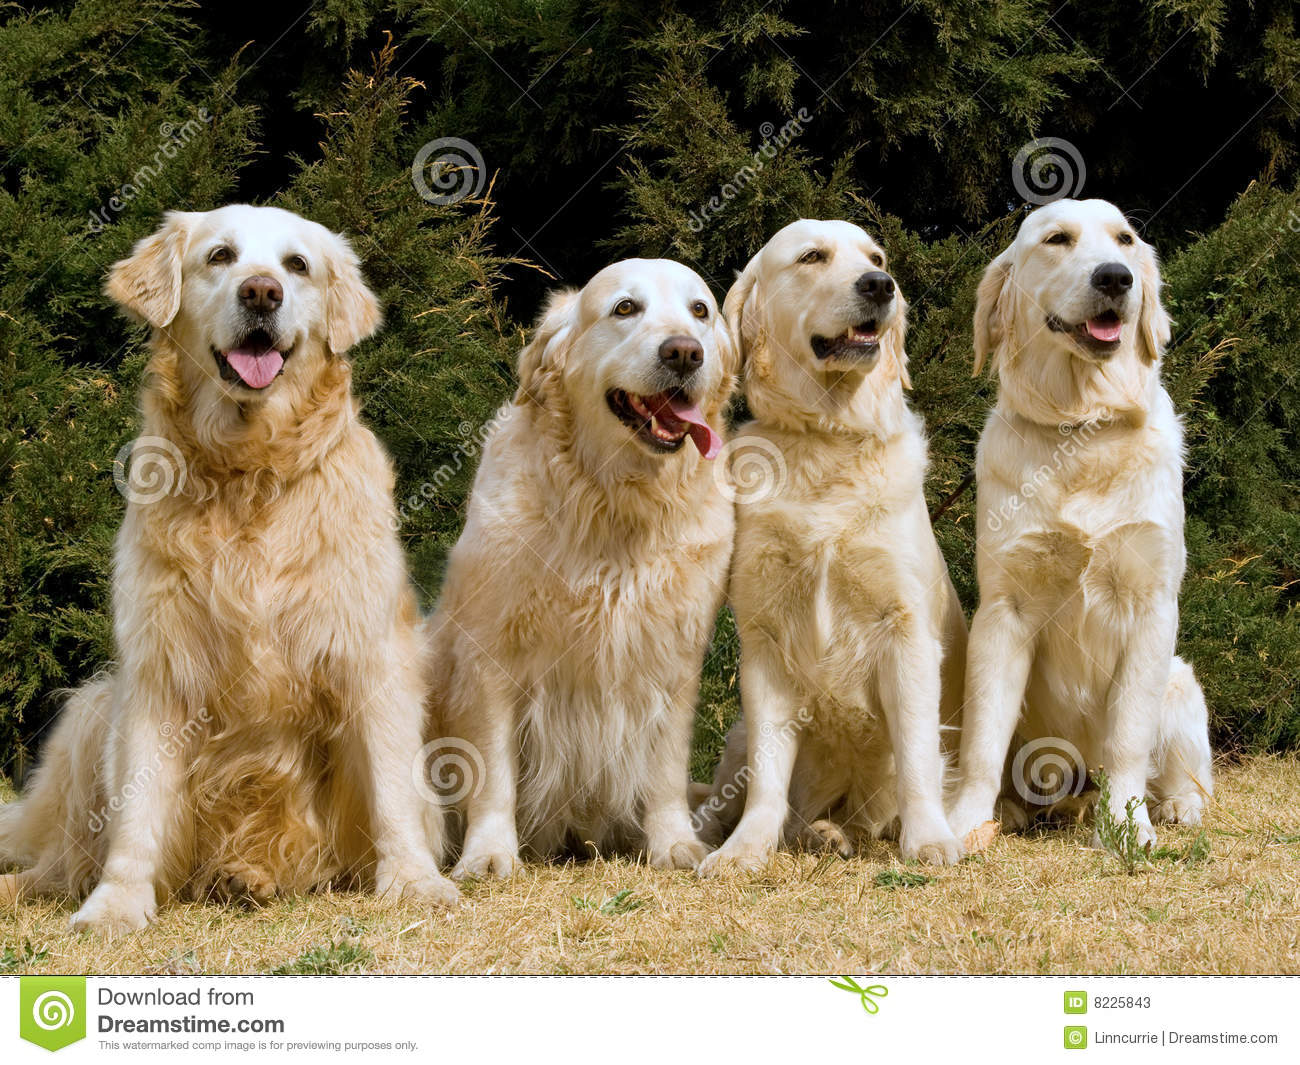 4 Beautiful Golden Retrievers Stock Image - Image of trained, pets: 8225843